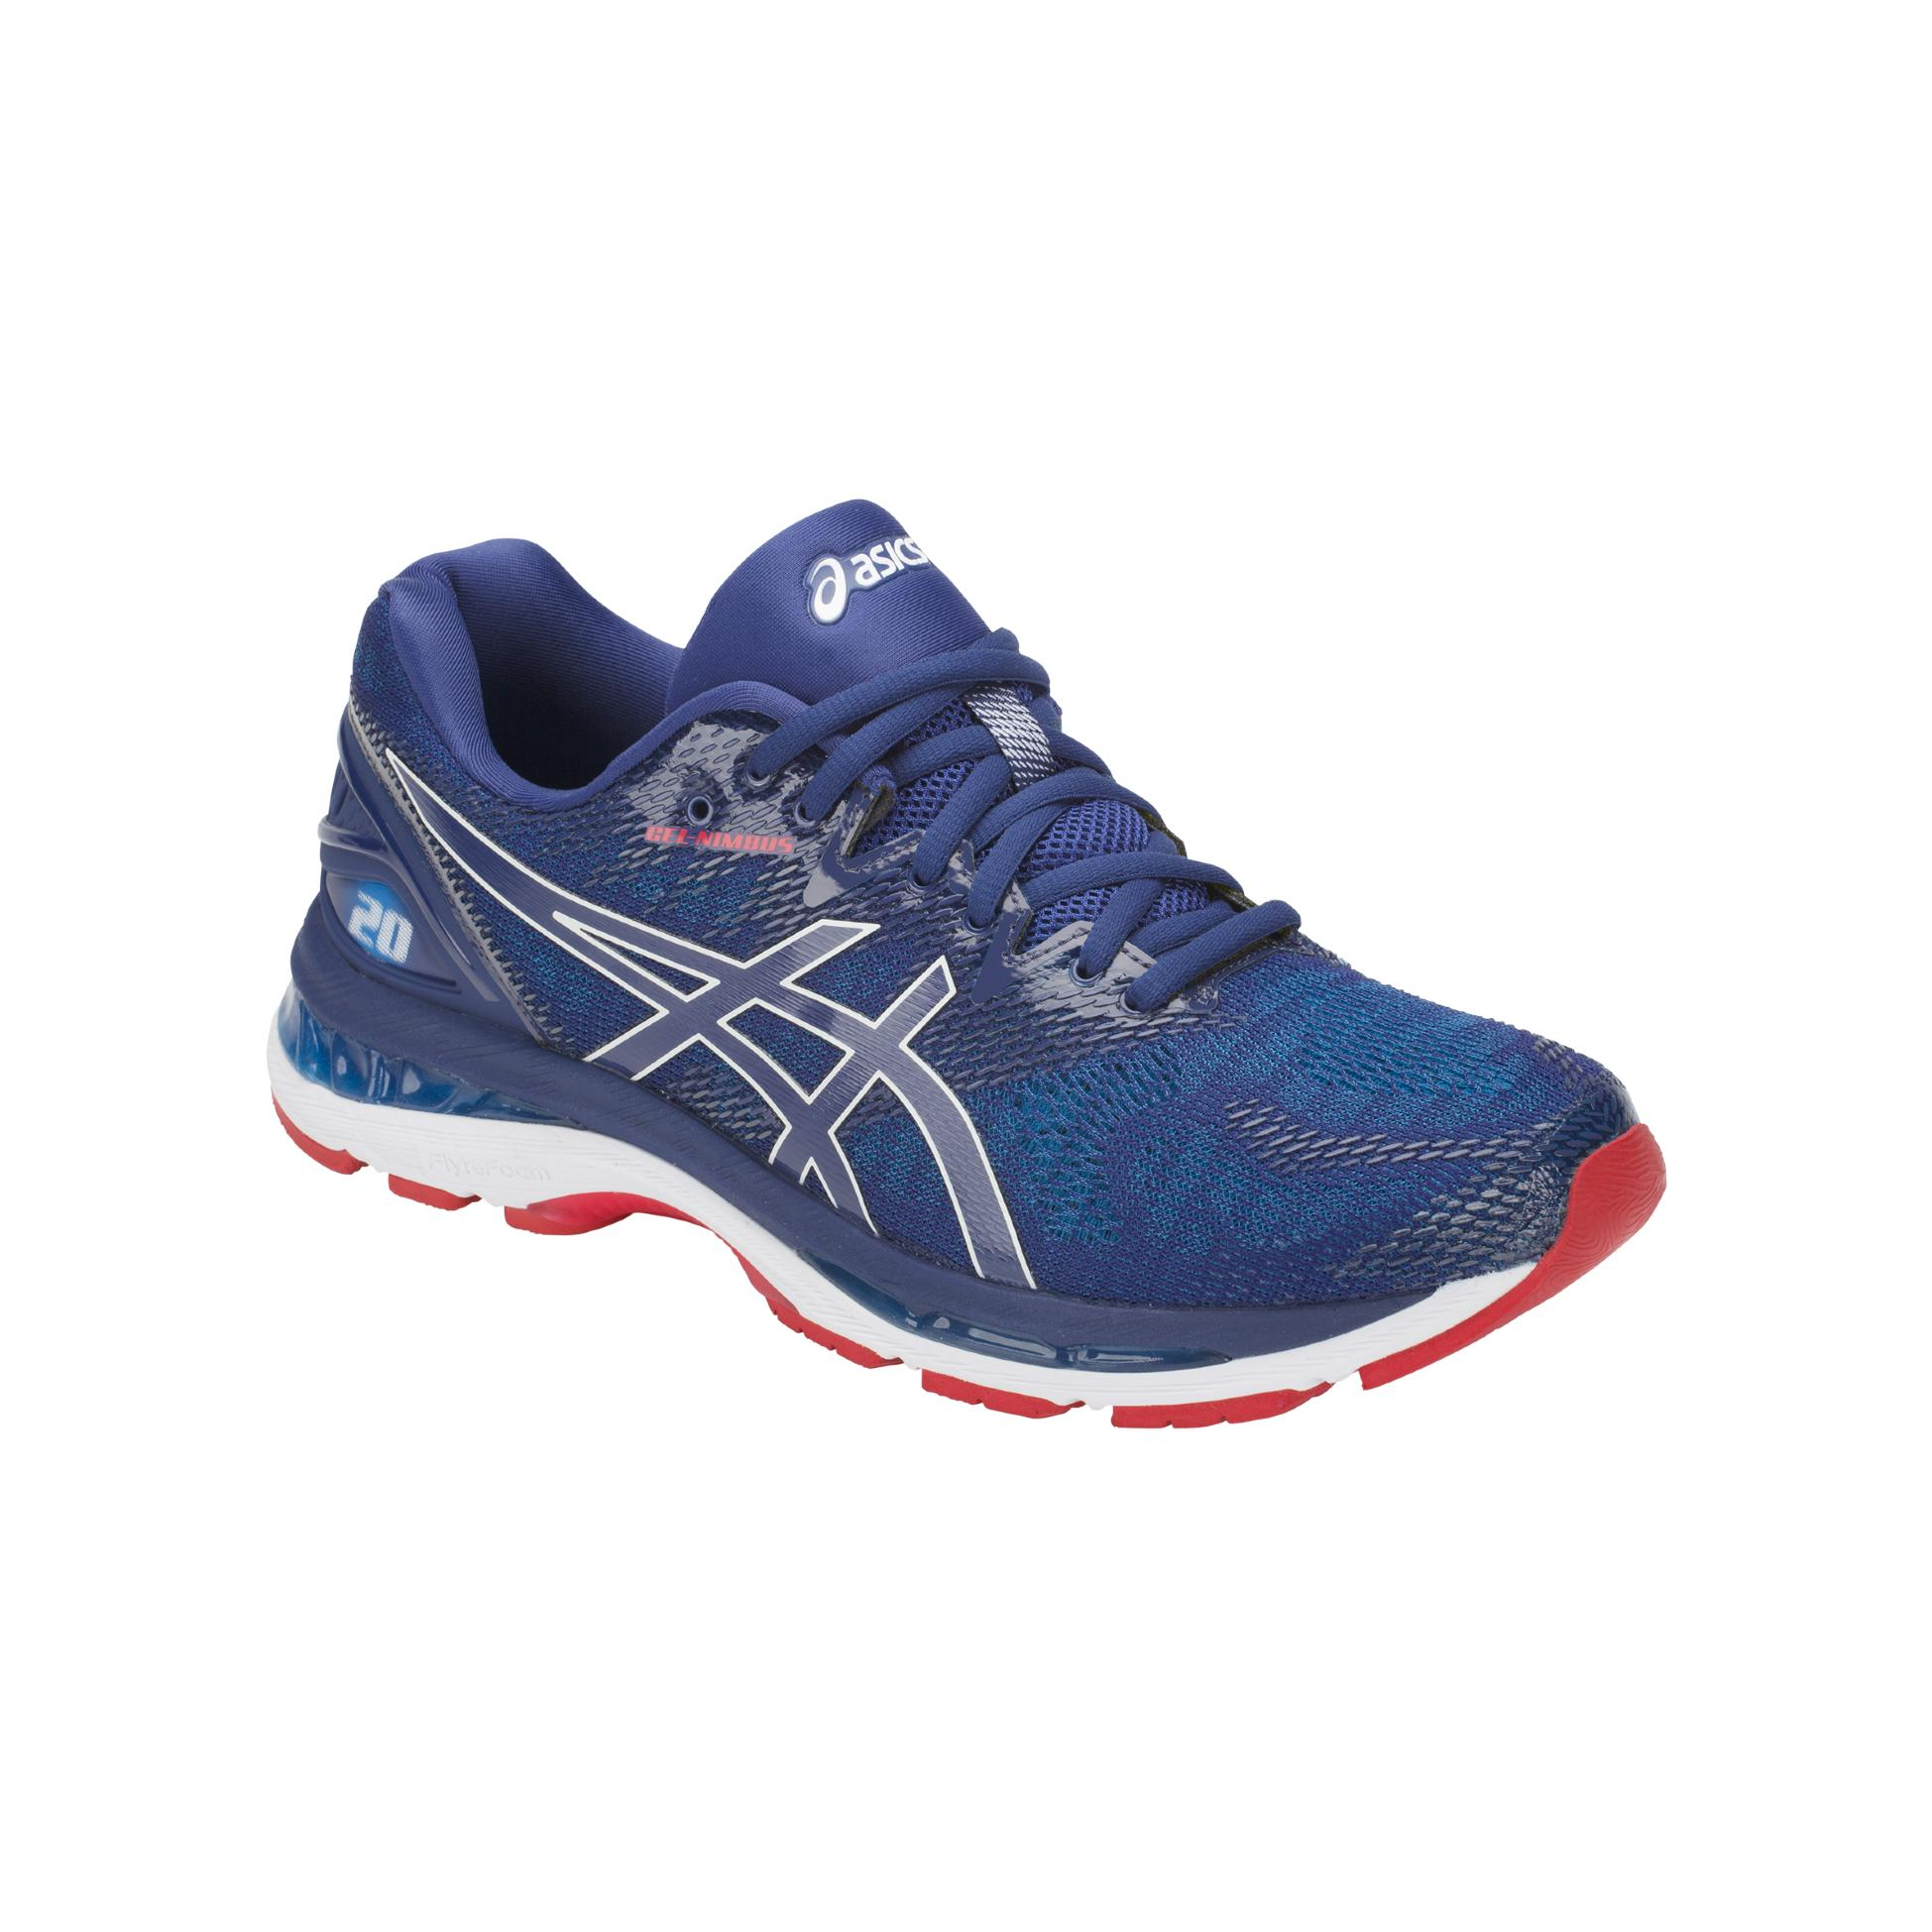 gel nimbus 20 asics bleu fonc et rouge 180 00 mod le homme. Black Bedroom Furniture Sets. Home Design Ideas